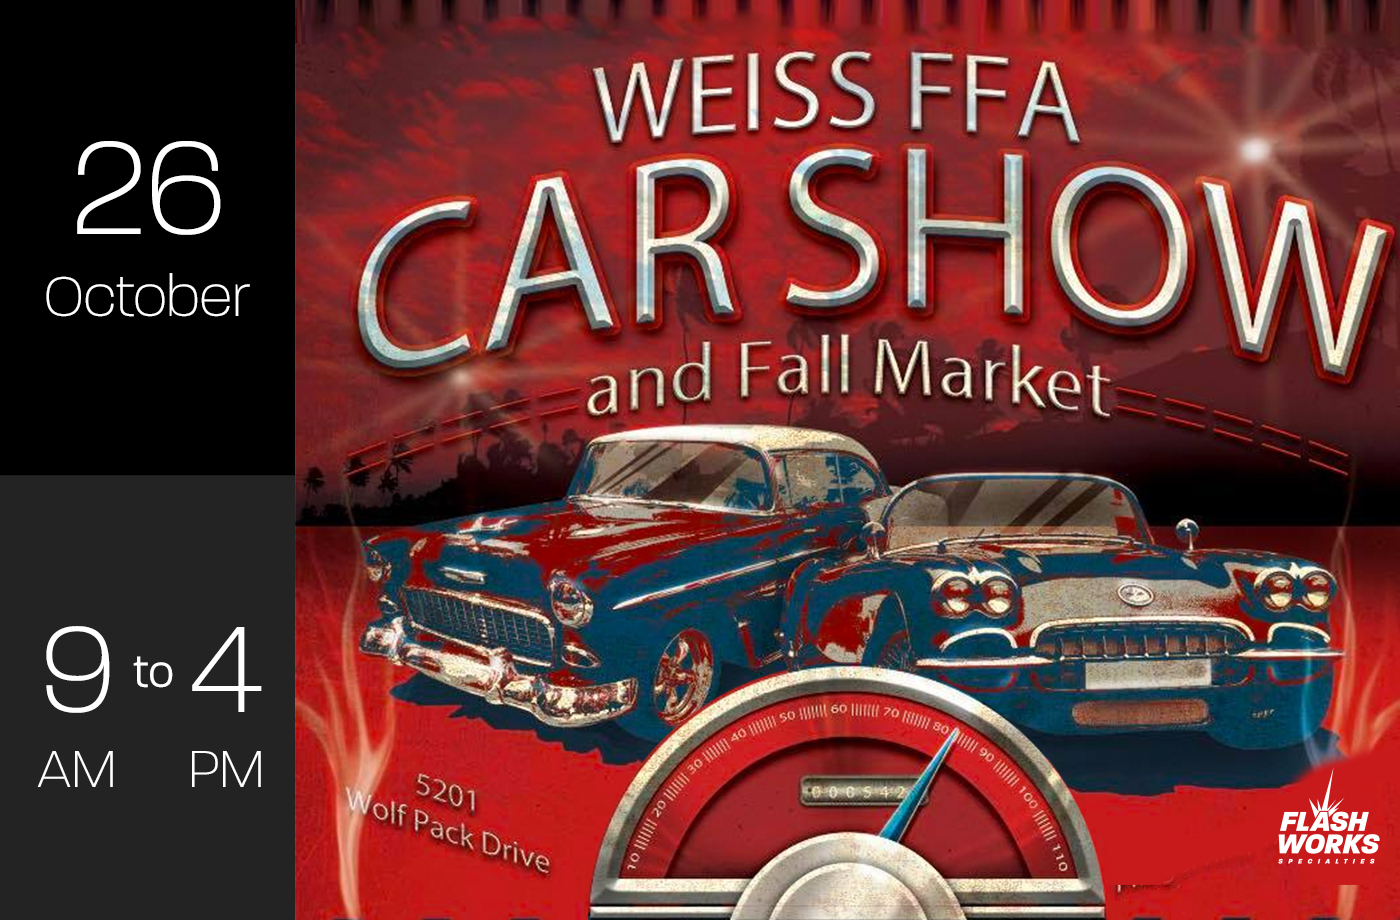 Weiss FFA Car Show and Fall Market in Pflugerville